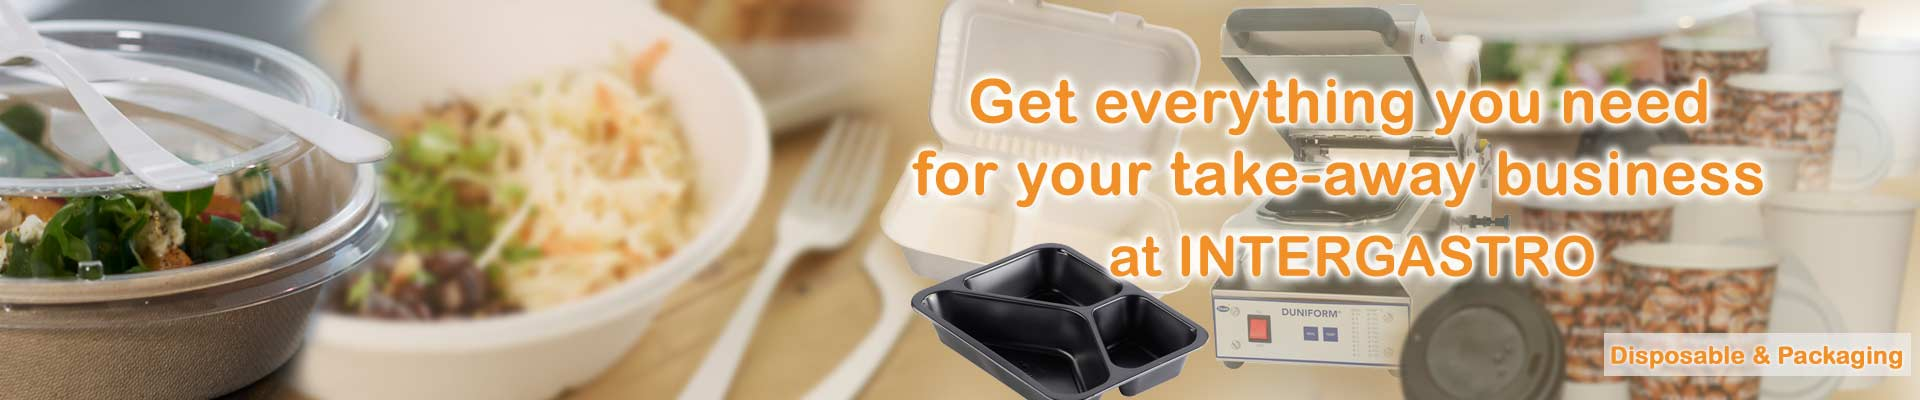 Get everything you need for your take-away business at INTERGASTRO